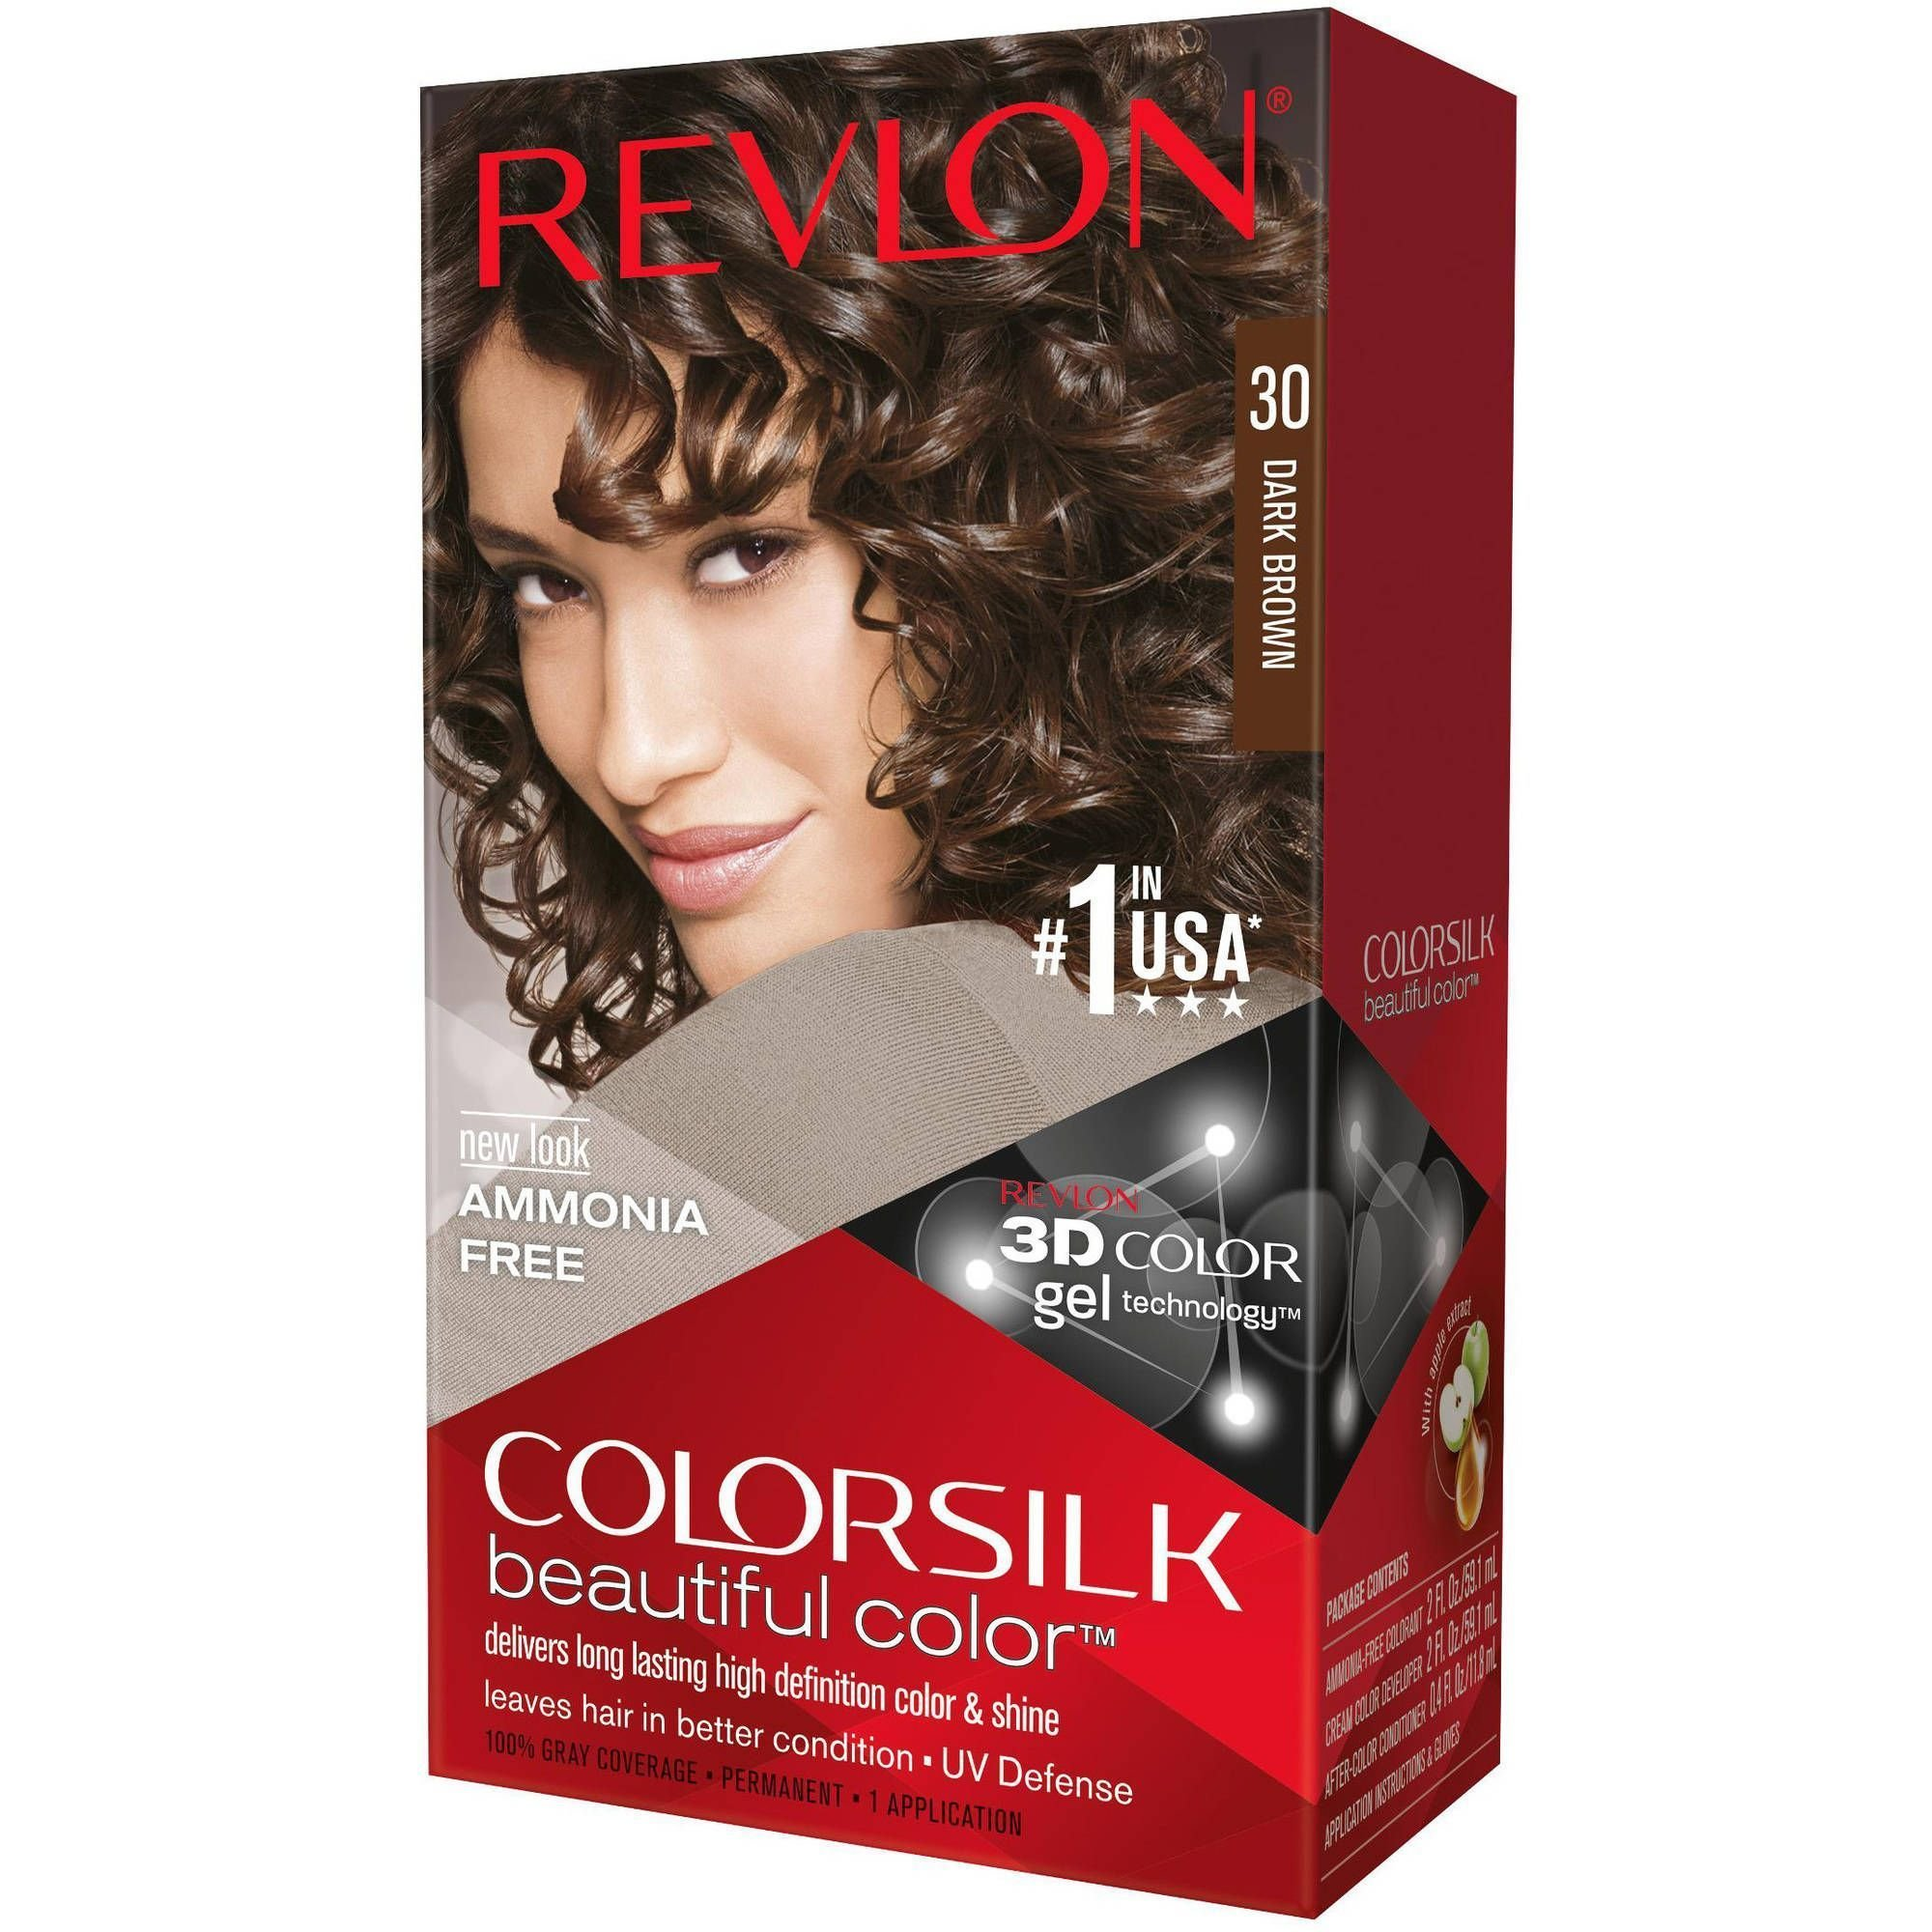 The Best 11 Best At Home Hair Color 2019 Top Box Hair Dye Brands Pictures